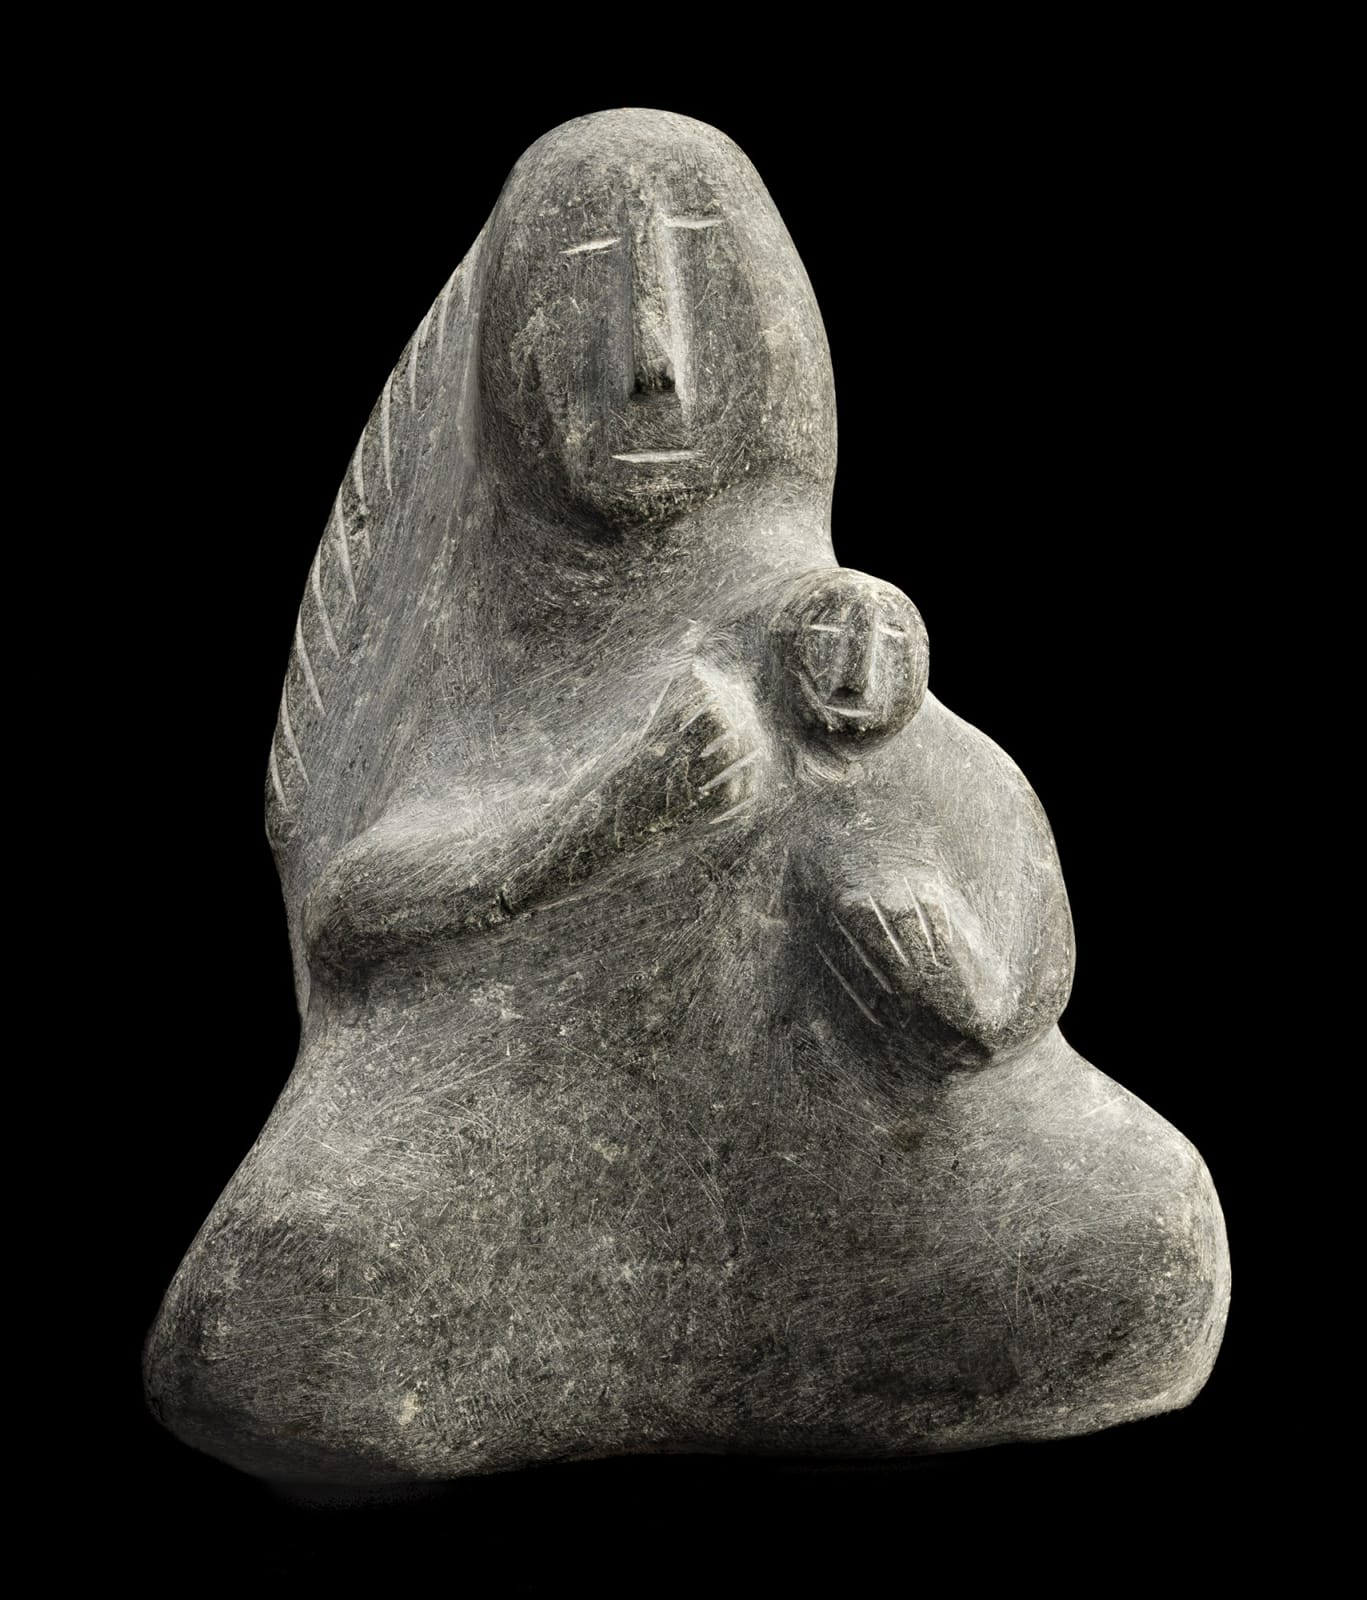 Lot 59 ELIZABETH NUTARAALUK AULATJUT (1914-1998), ARVIAT (ESKIMO POINT) Mother and Child, c. 1970-72 stone, 8 x 6.5 x 3 in (20.3 x 16.5 x 7.6 cm) Estimate: $6,000⁠ — $9,000 Price Realized: $6,160